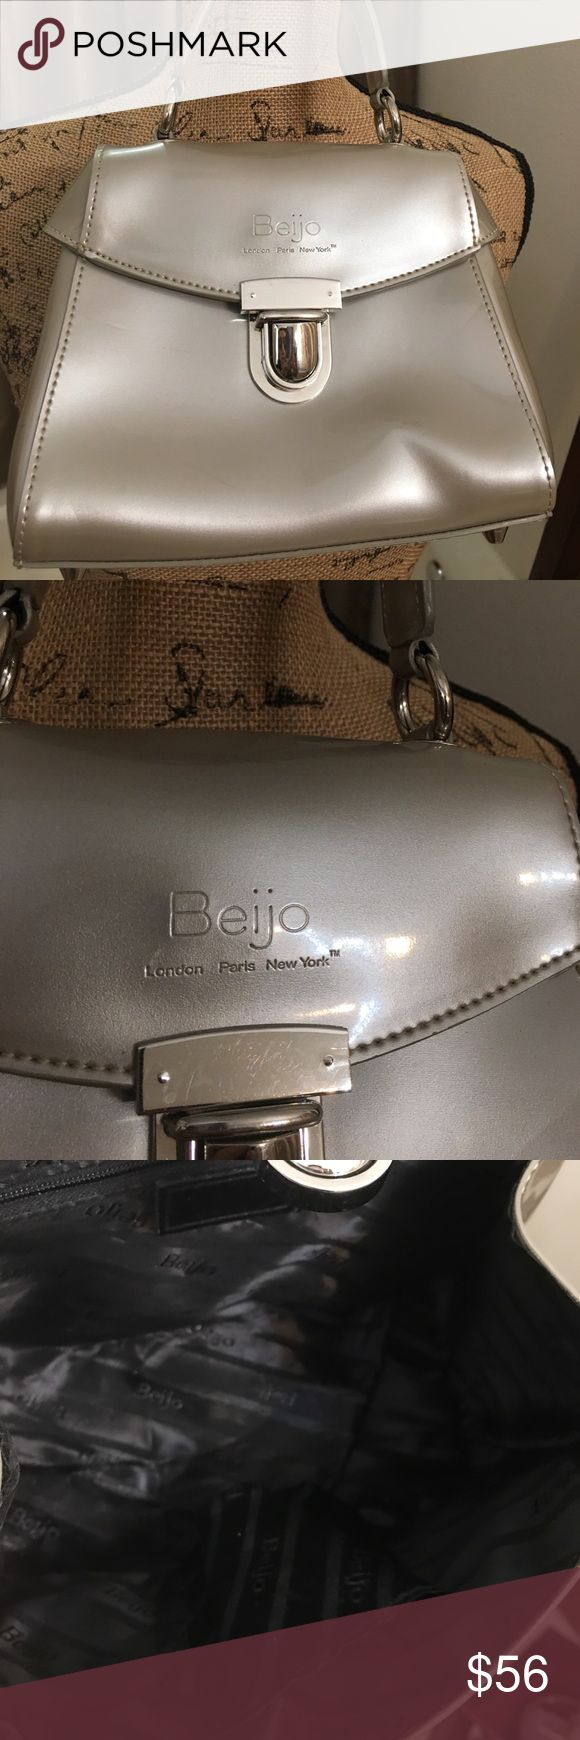 """Beijo Champagne Adorable Mini Bag. Vegan Patent Ever so sweet of a bag.   Taupe / Champagne color.  Not sure I should part with it.  Cute as a button. 7.5"""" wide x 6.5 tall.  Clean inside. Minor scuff on the back....only noticeable when the light hits it right.   Offers accepted. beijo Bags Mini Bags"""